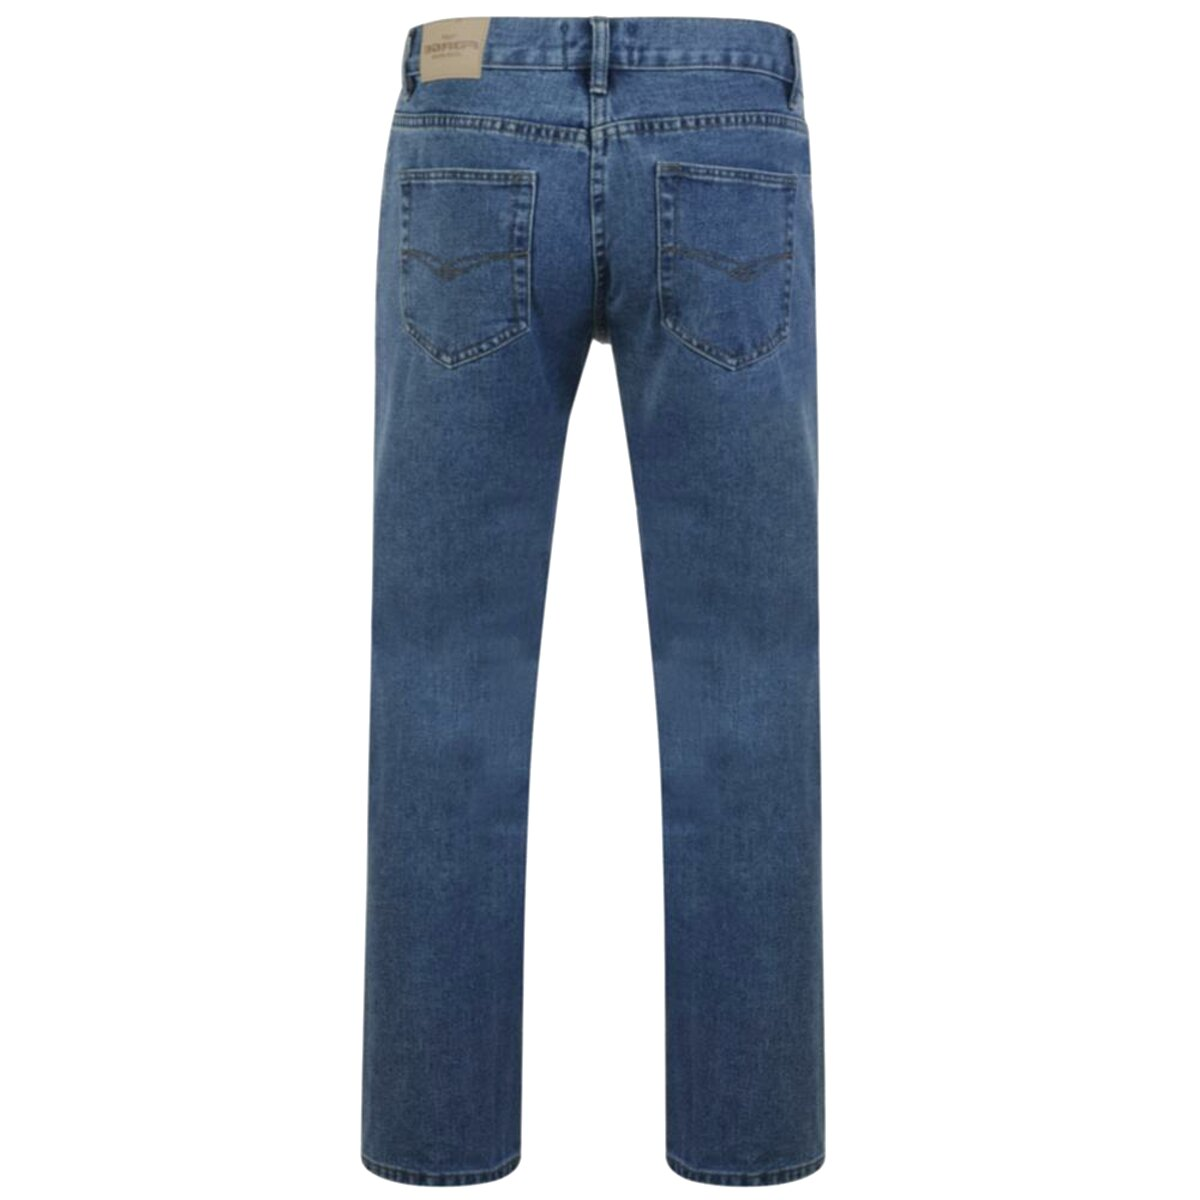 kam jeans for sale